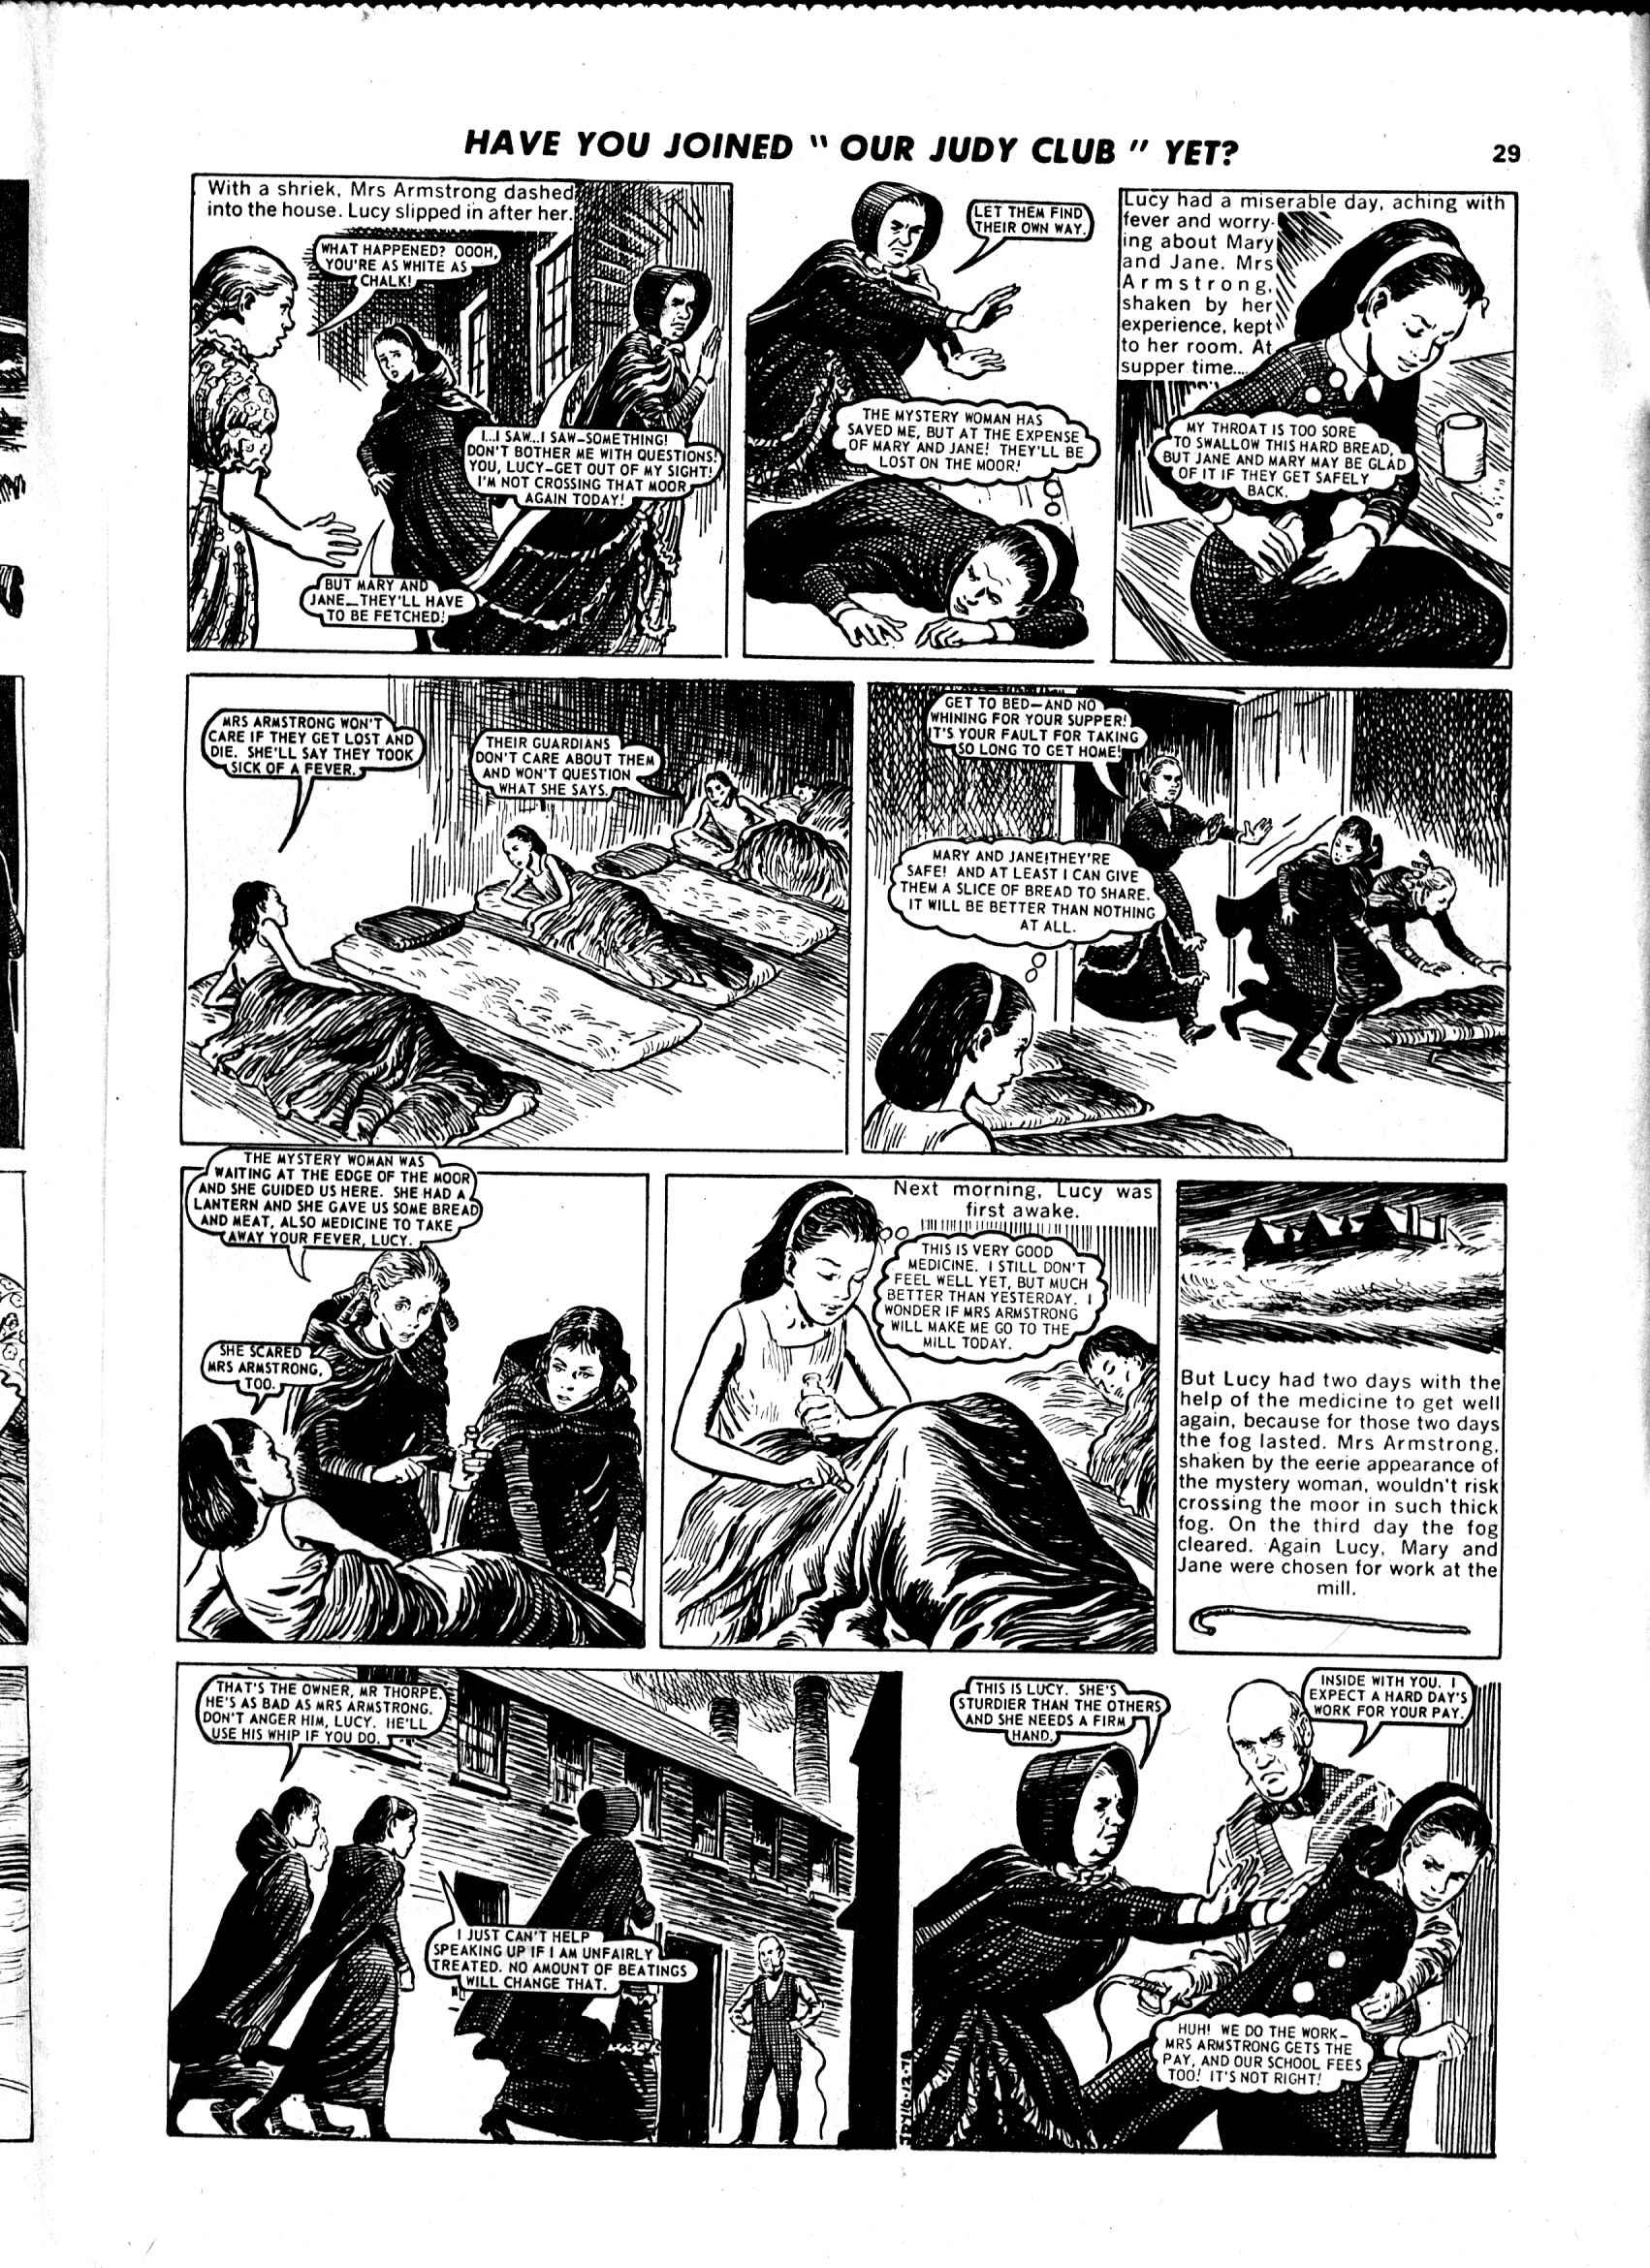 Read online Judy comic -  Issue #988 - 29